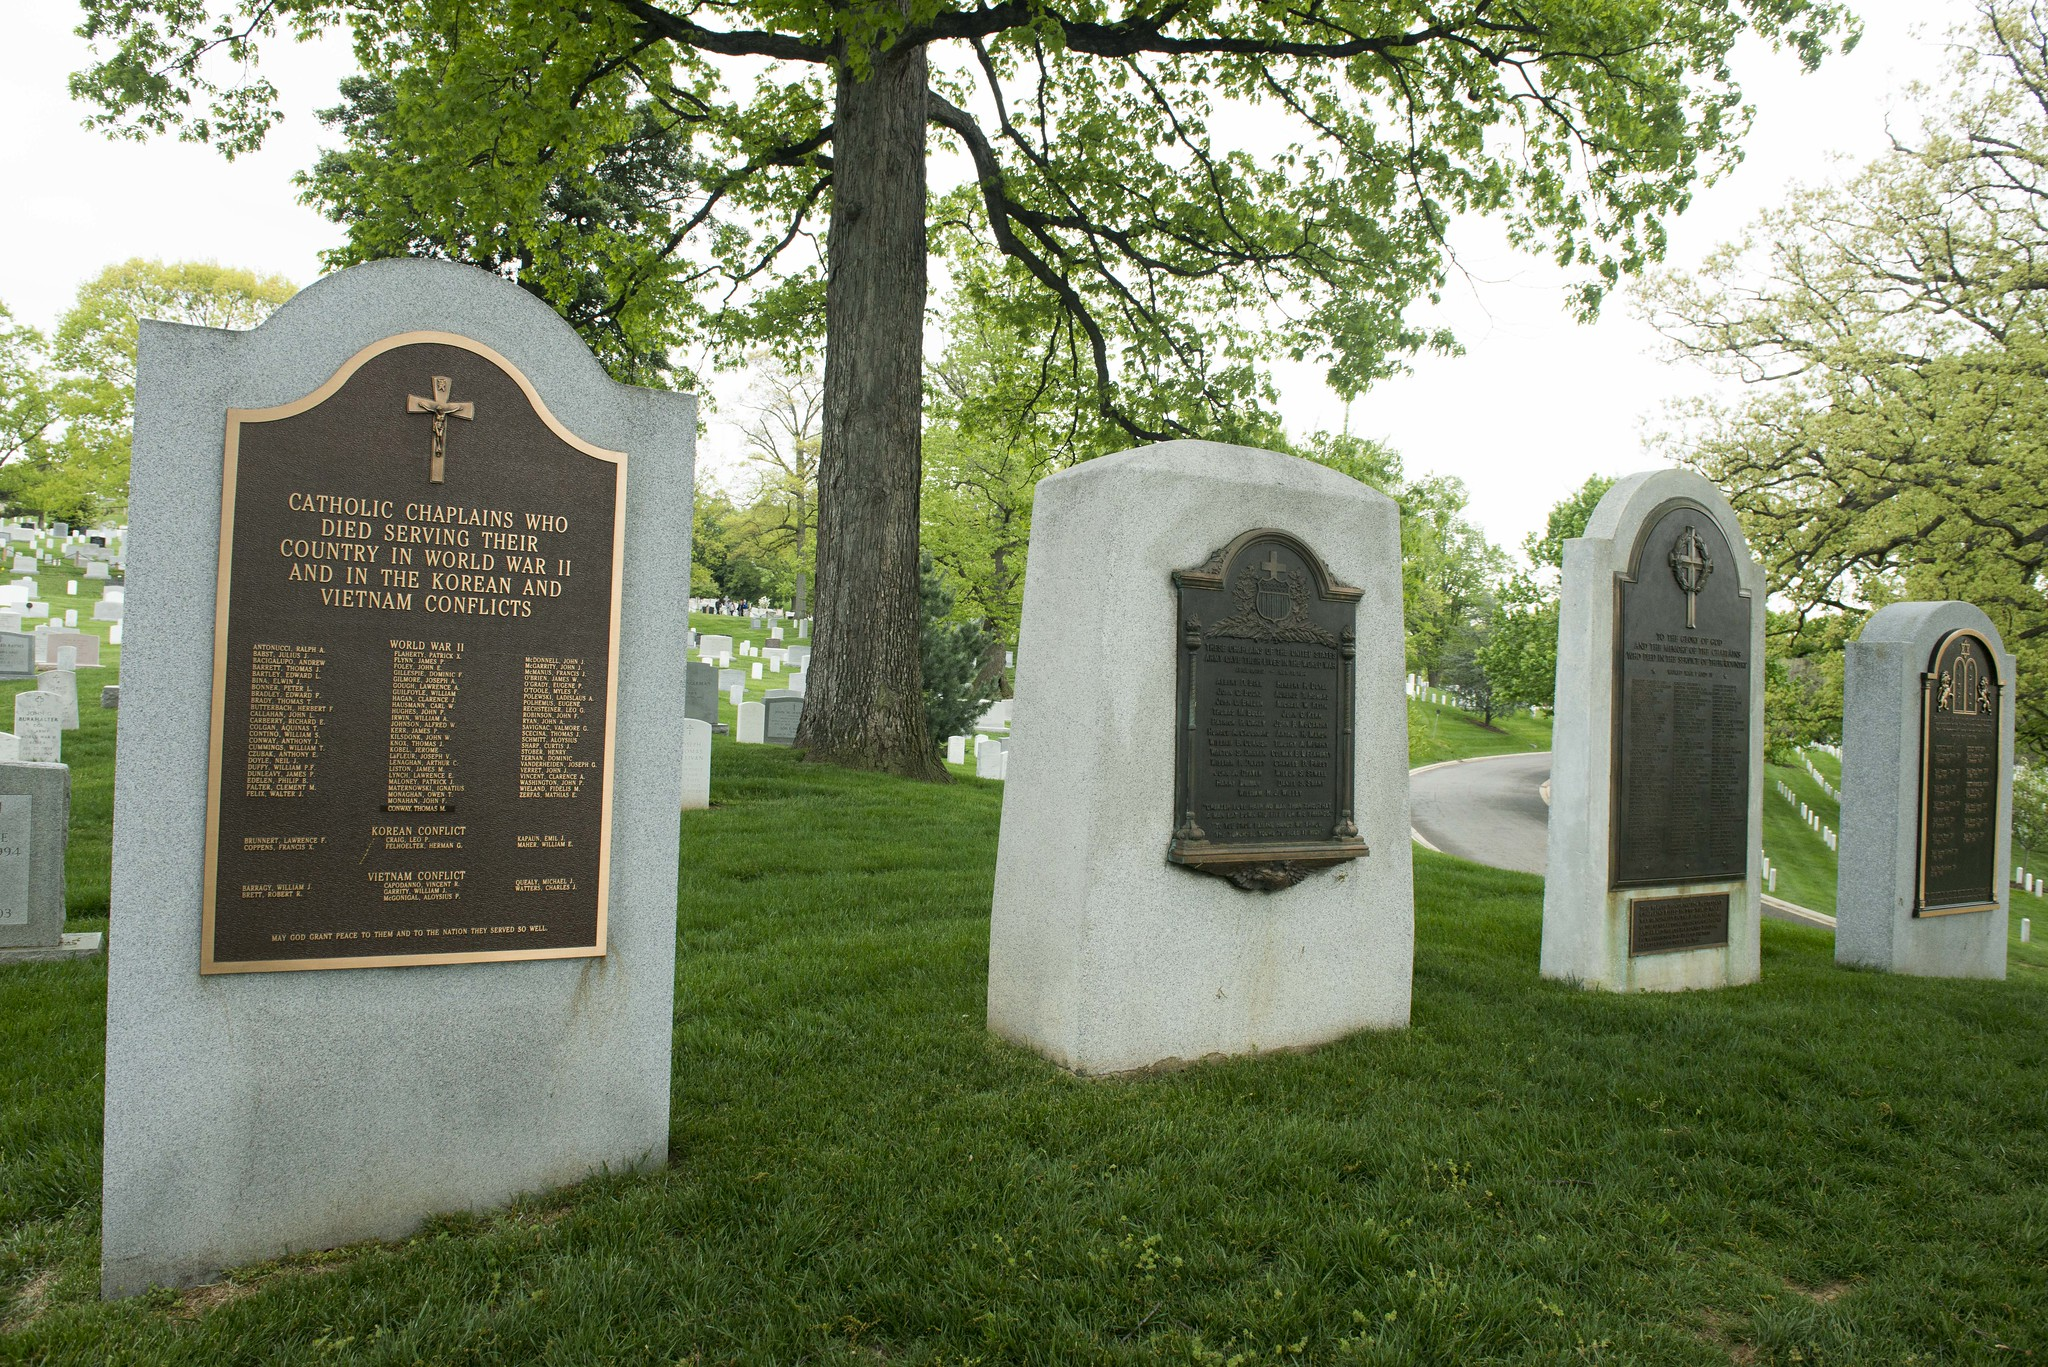 Four monuments to military chaplains on Chaplains Hill